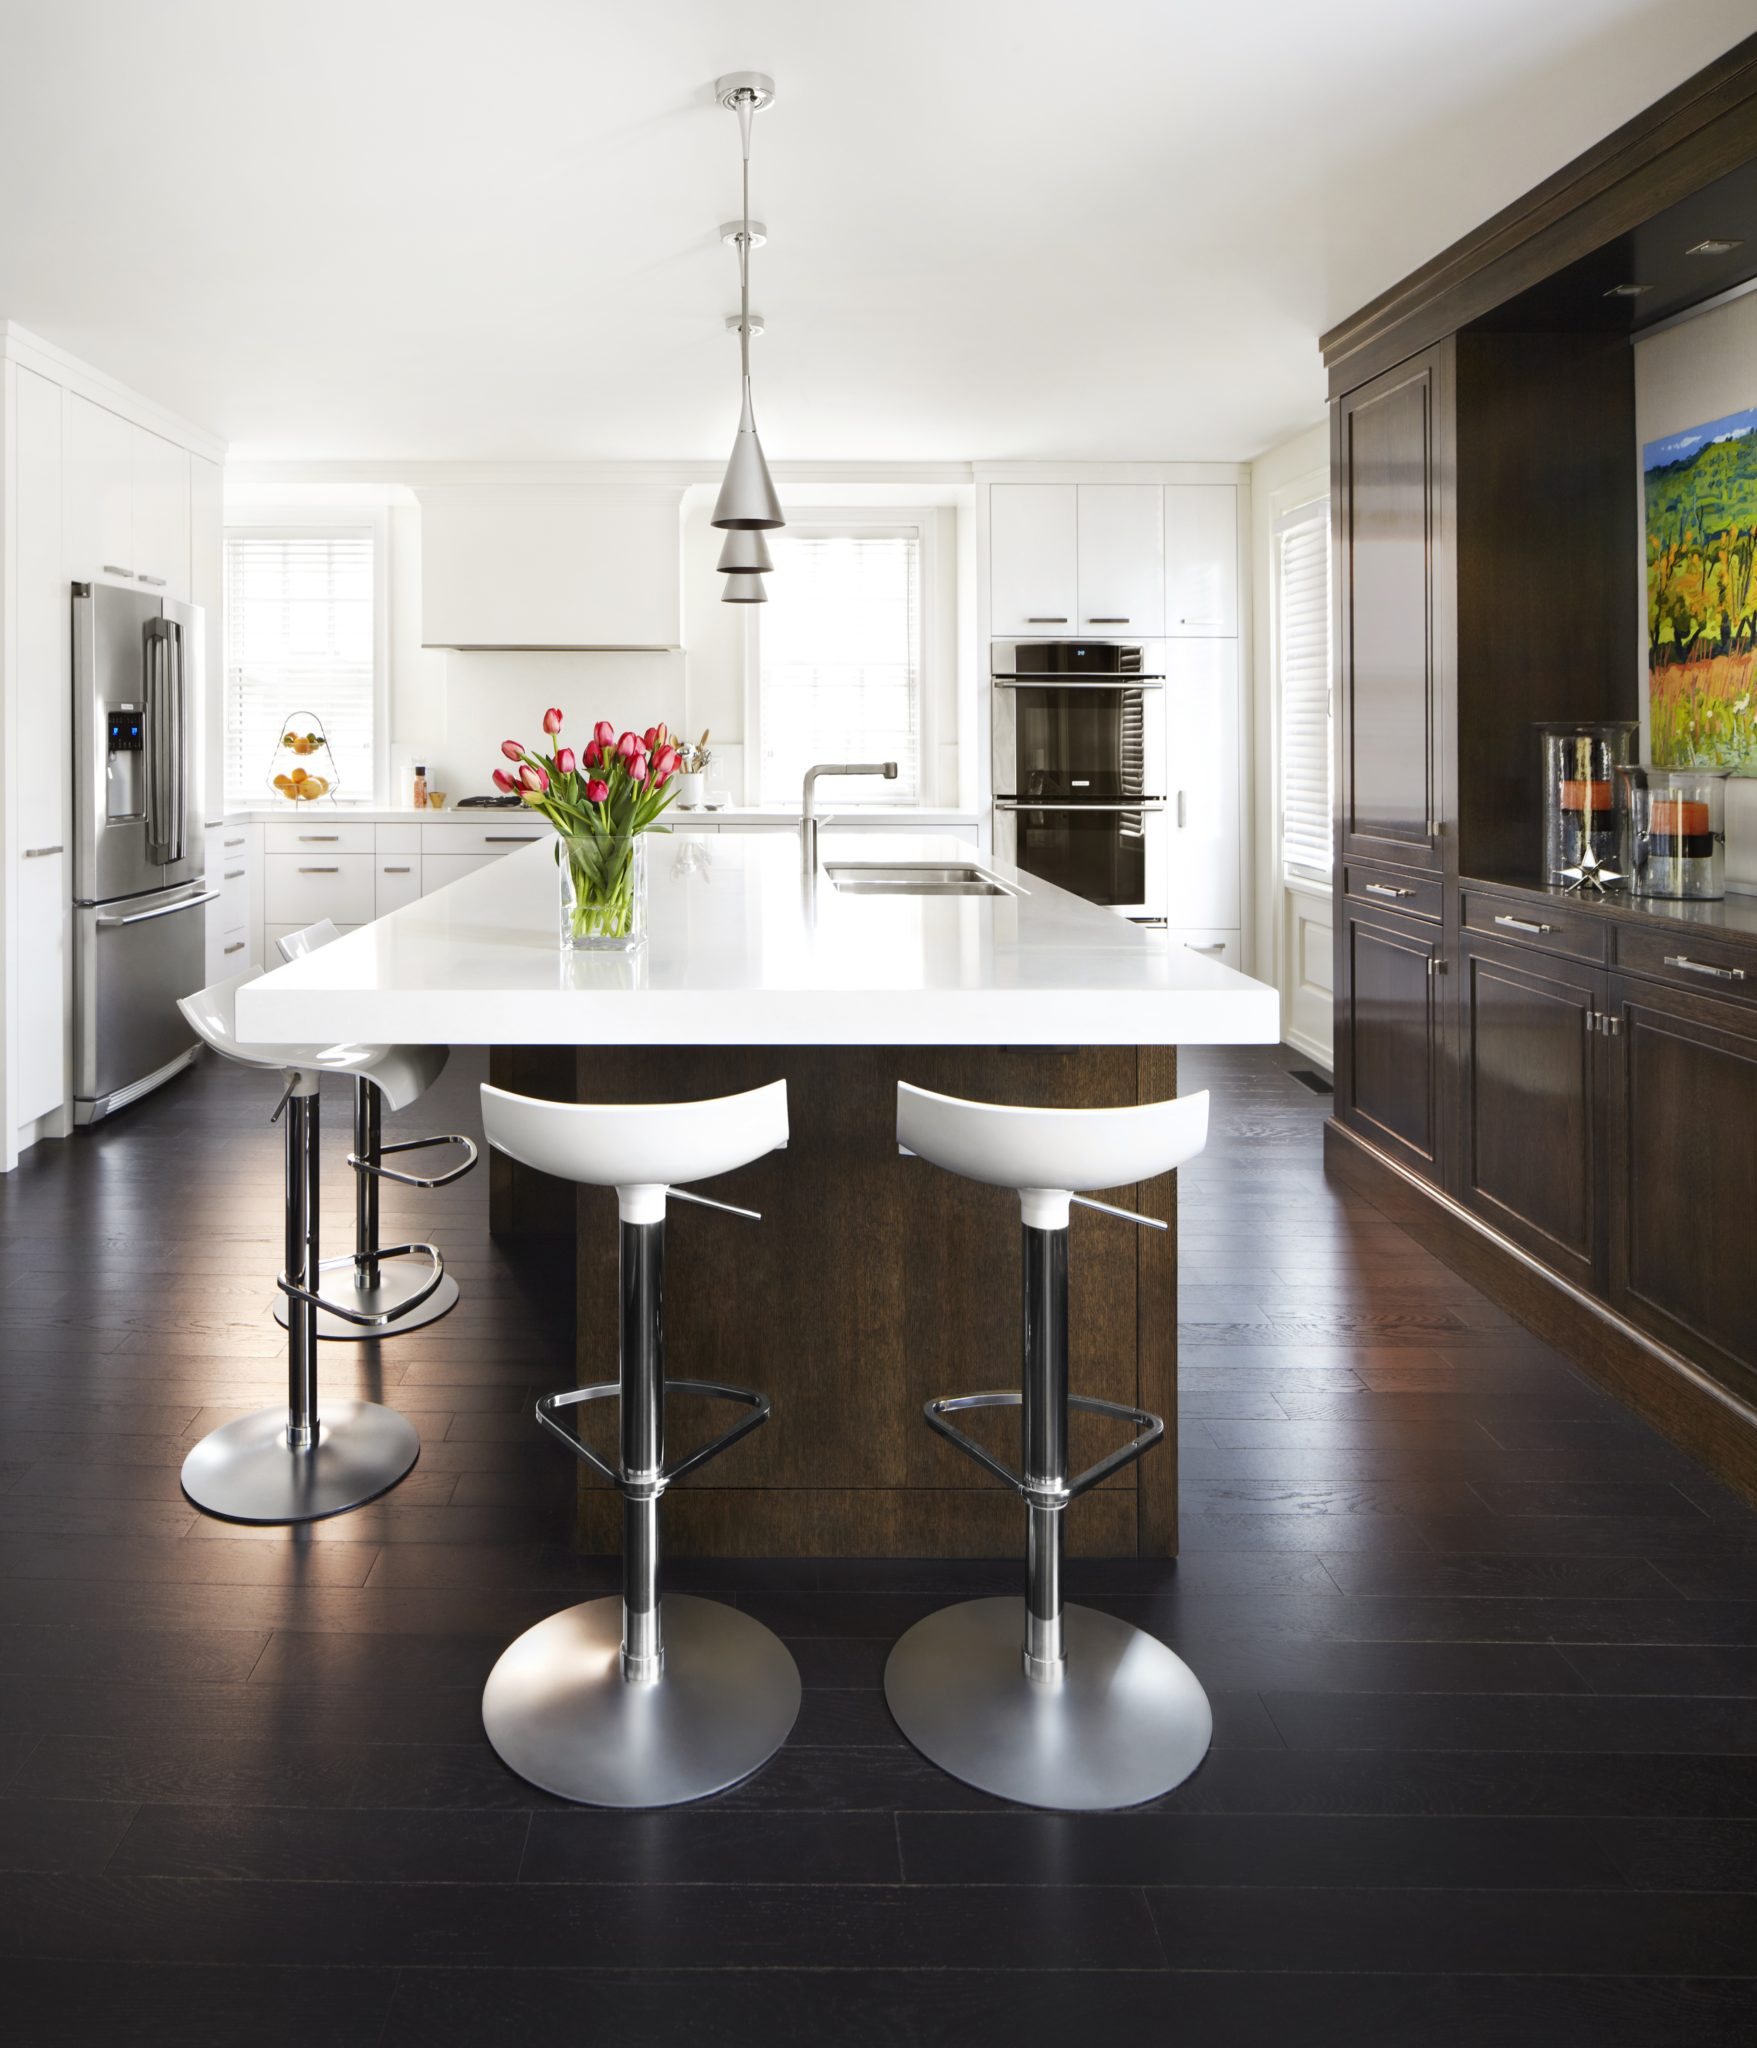 South Rosedale contemporary renovation by Rowlands Associates